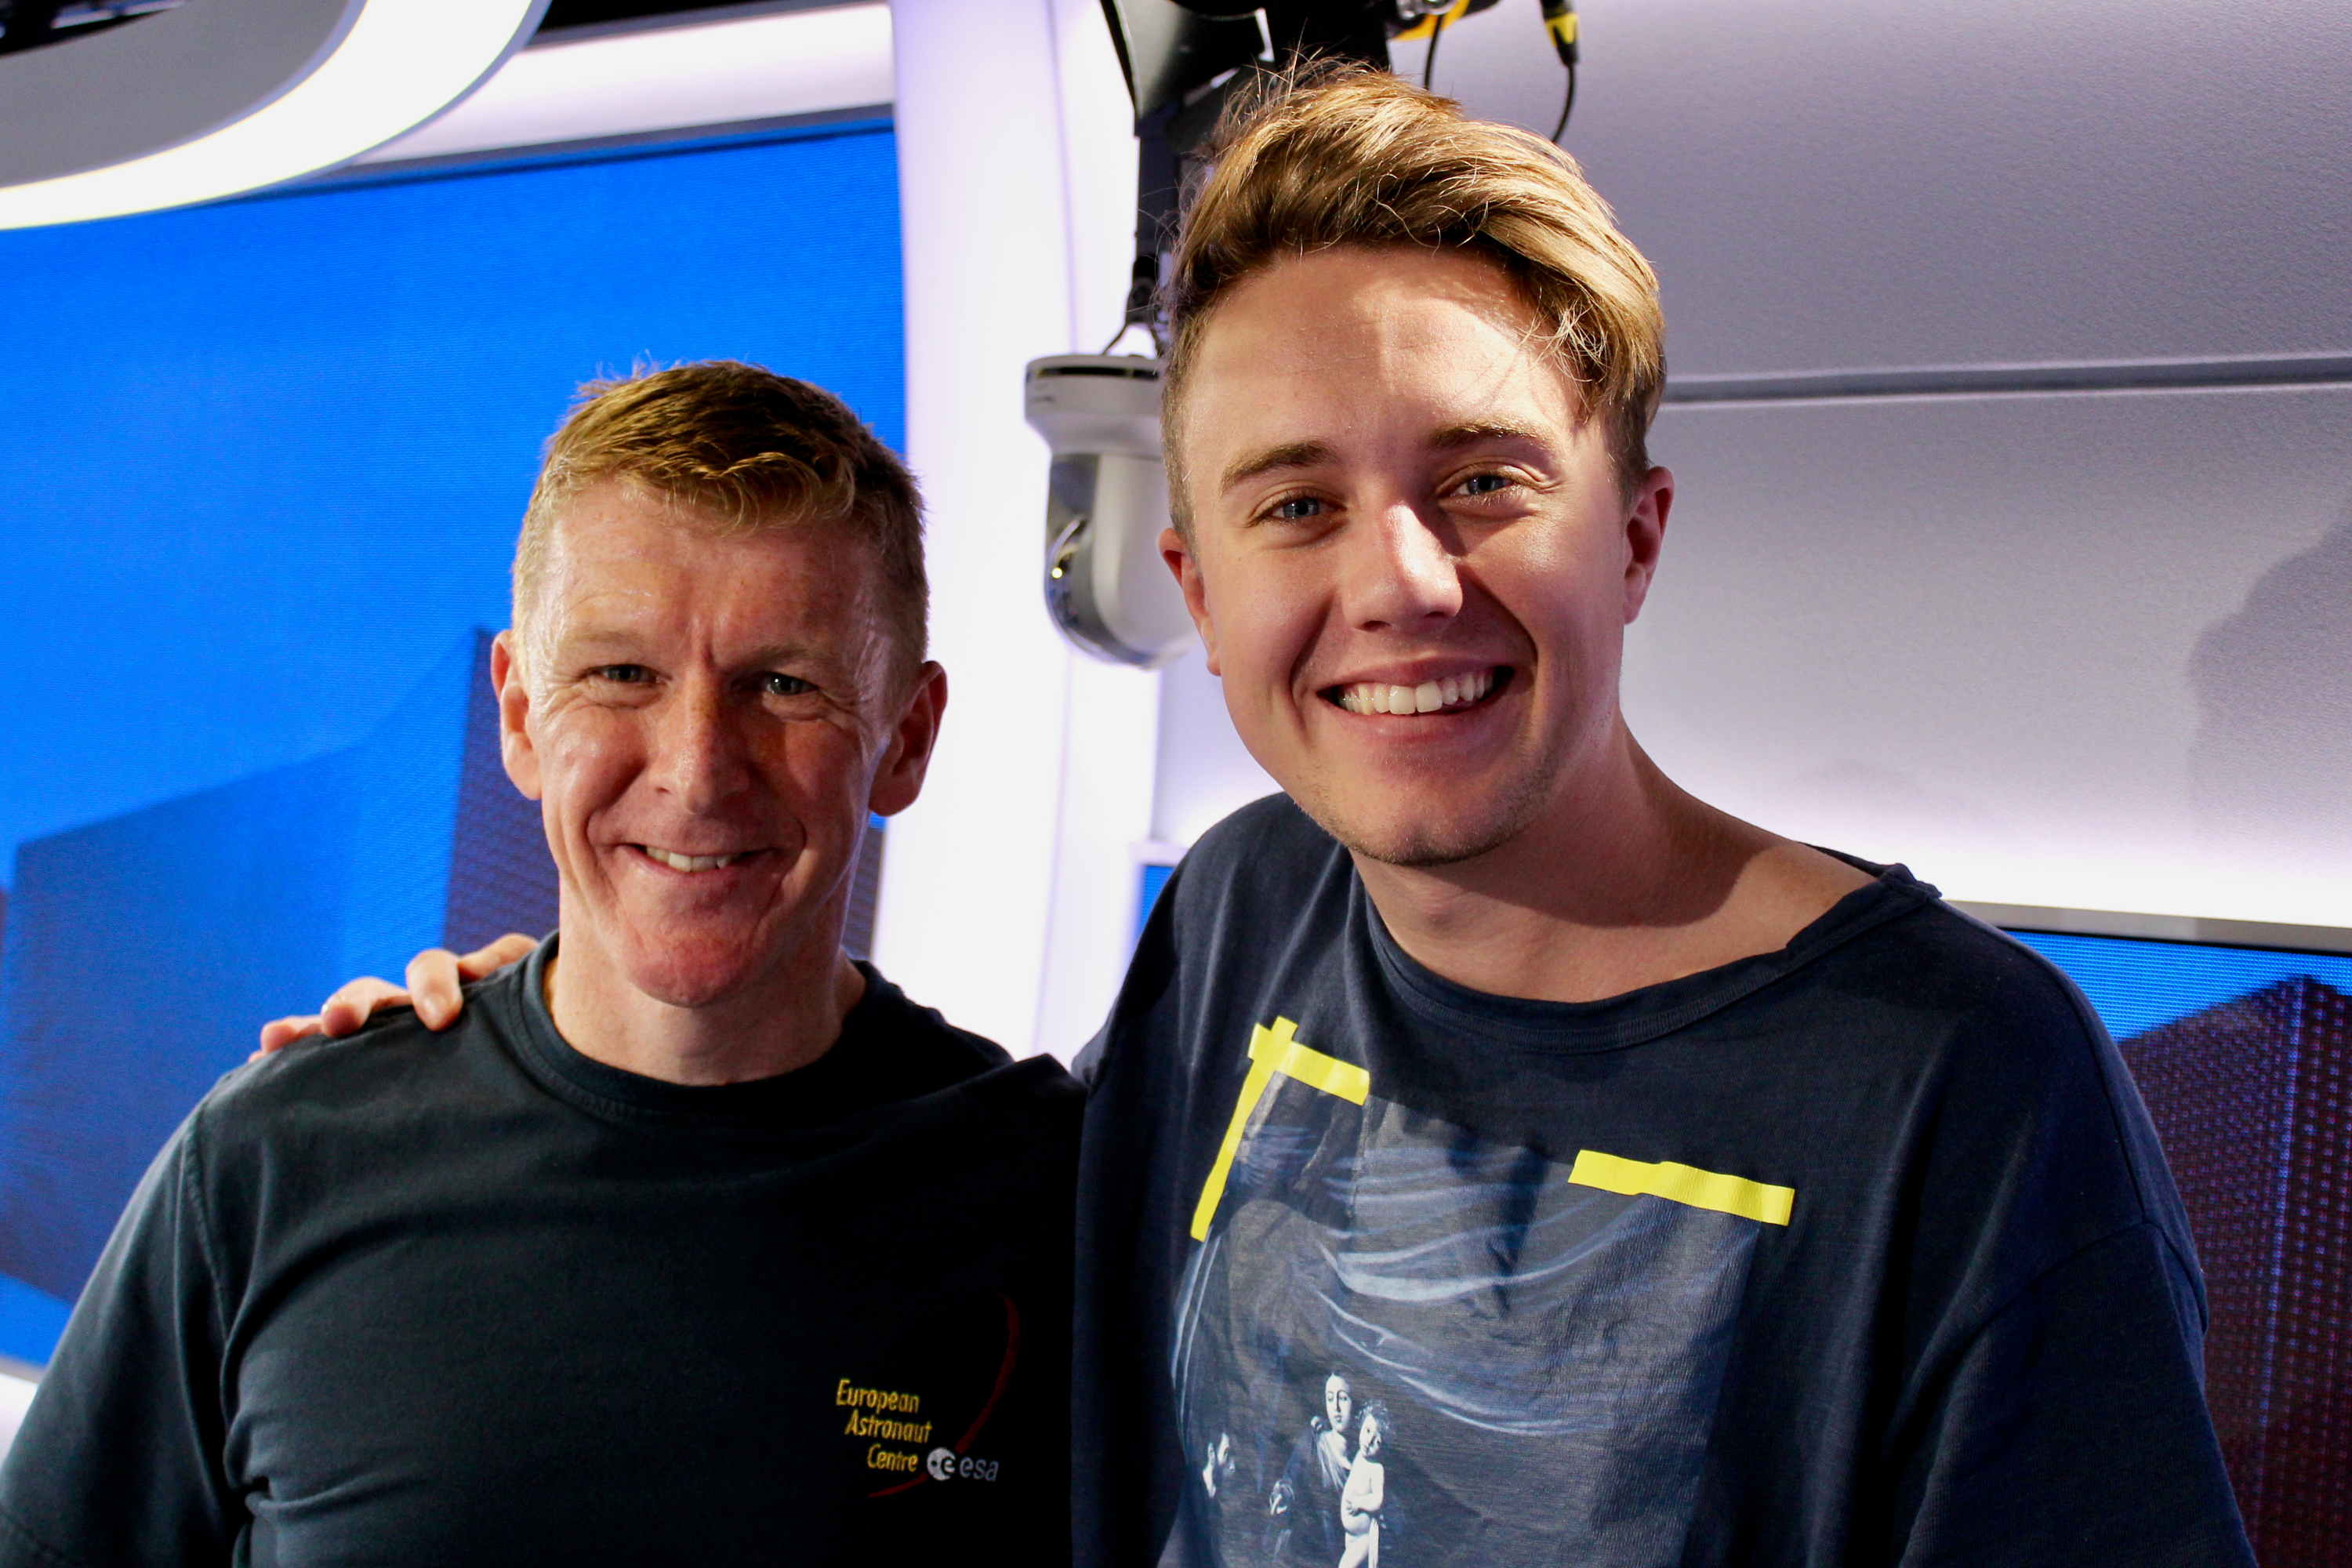 Tim Peake on Capital Breakfast w/ Roman Kemp